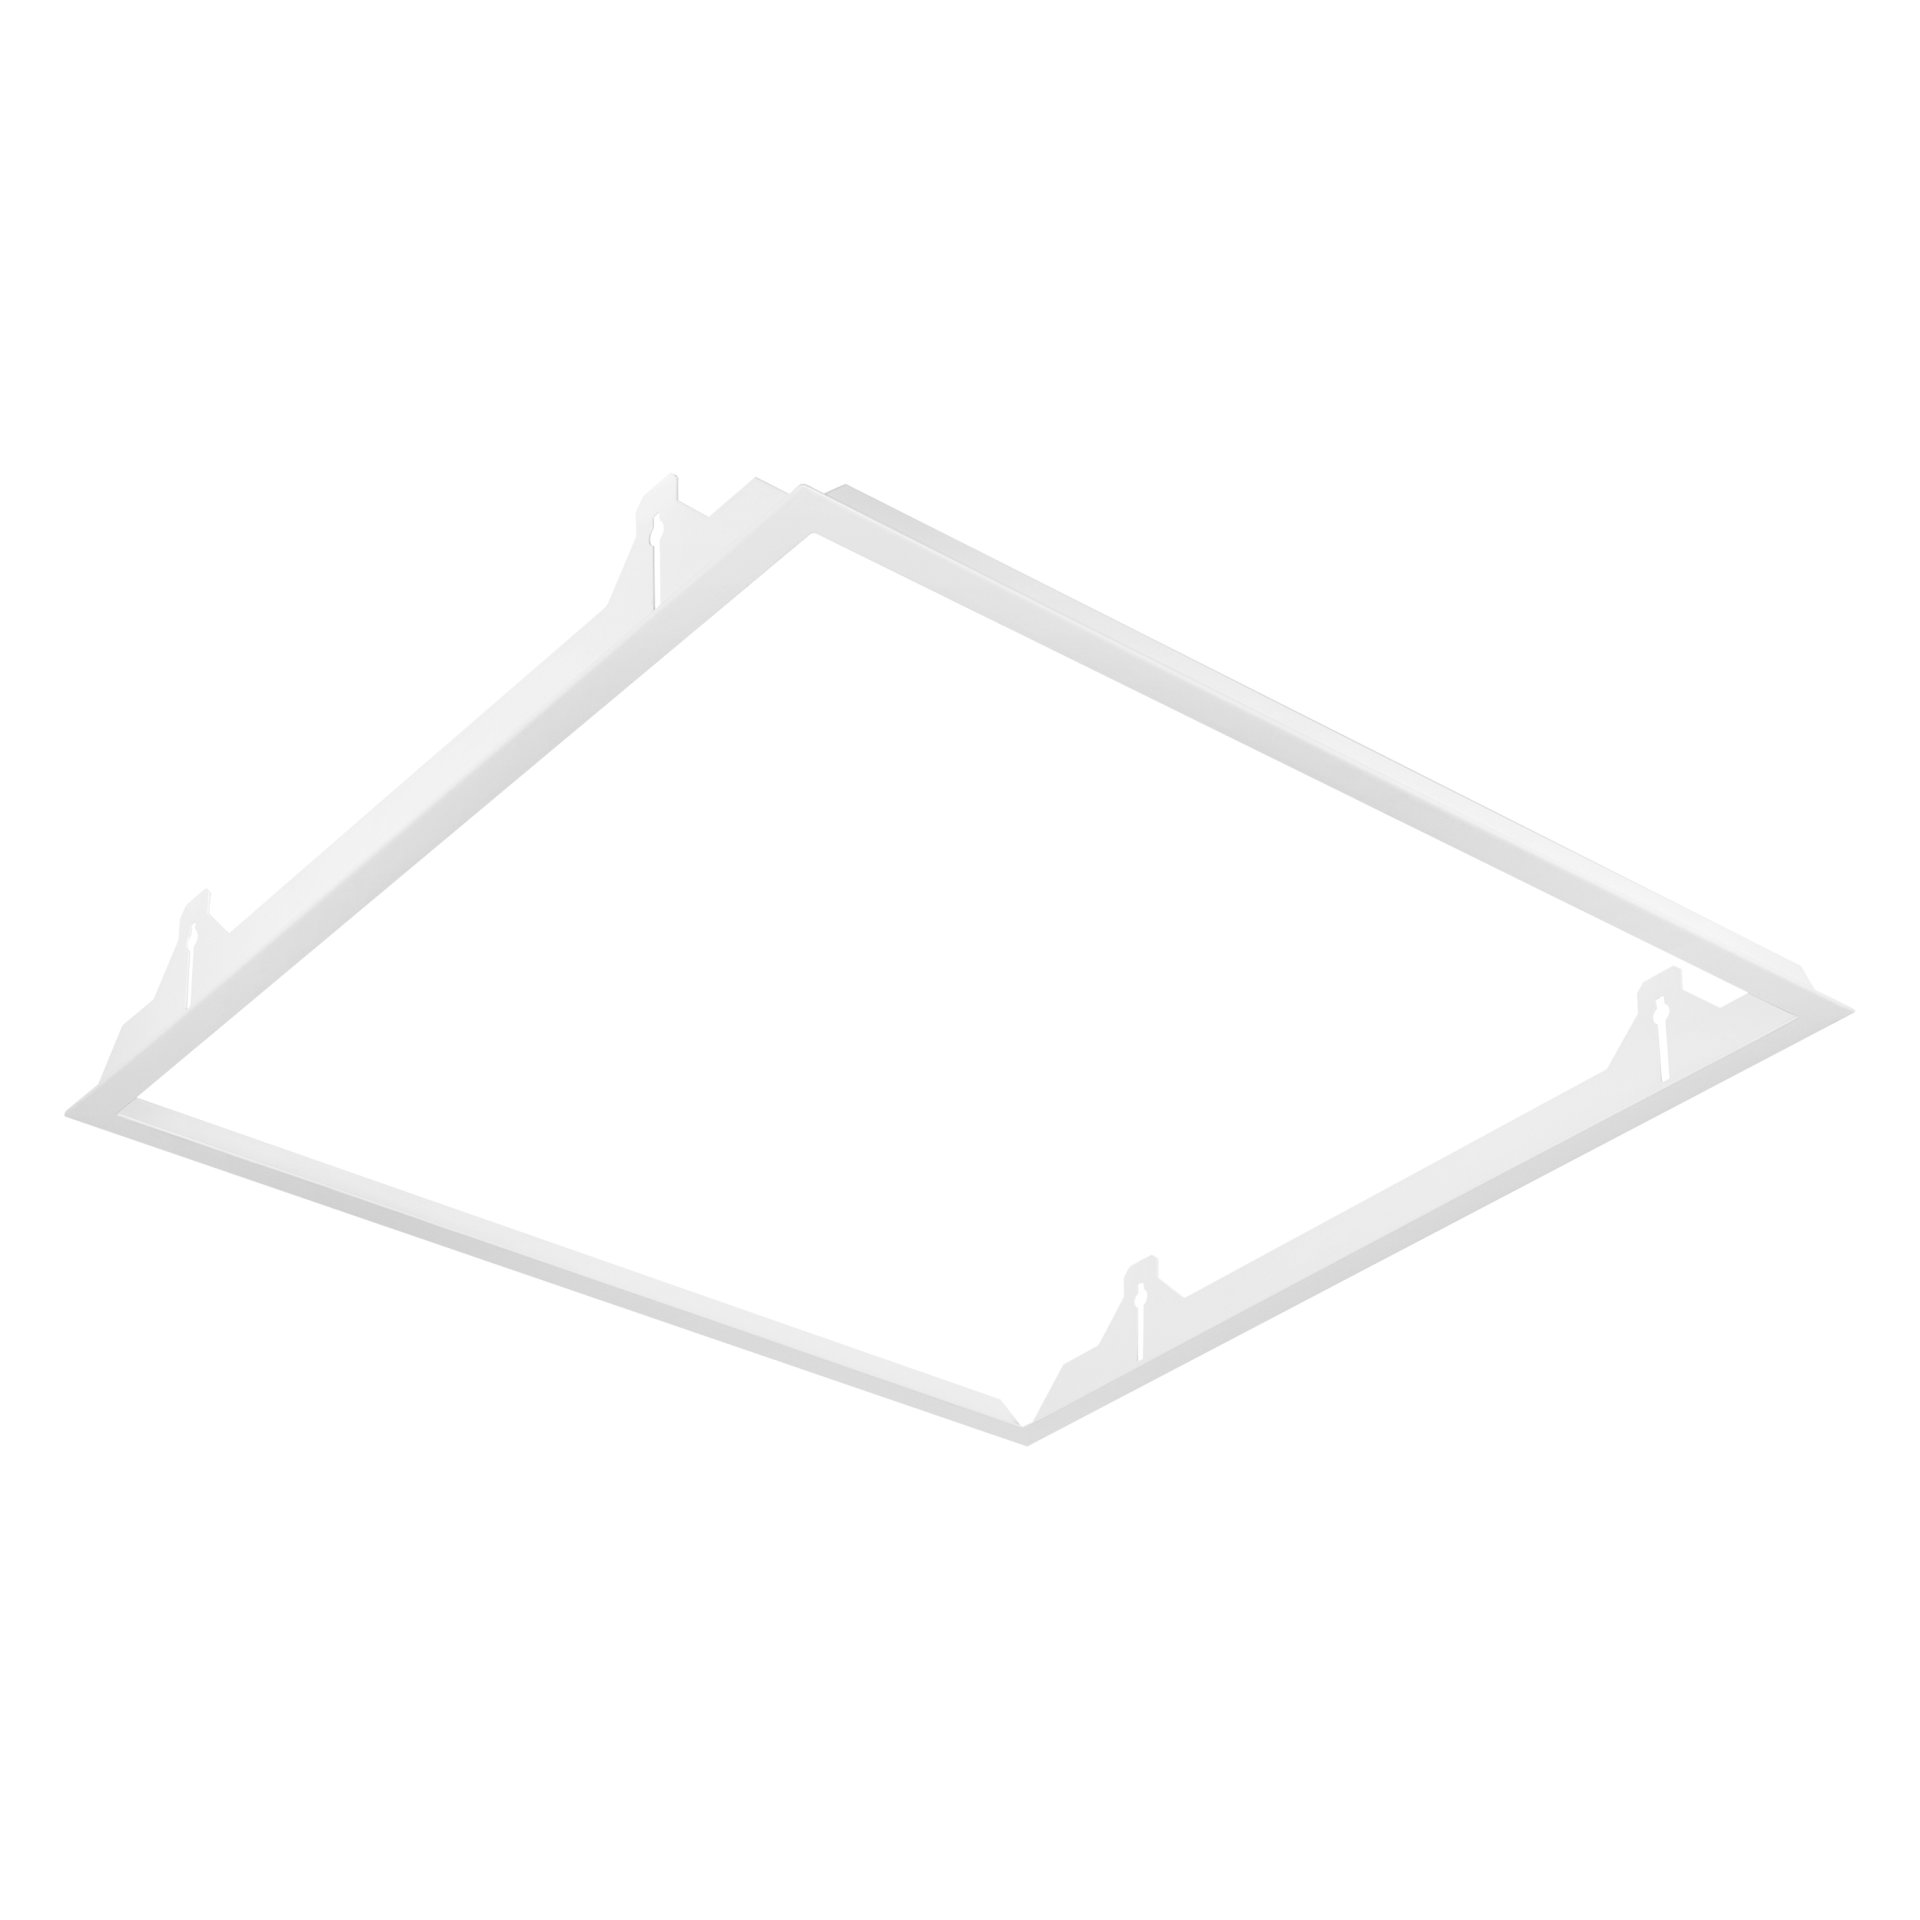 RECESSED MOUNT FRAME